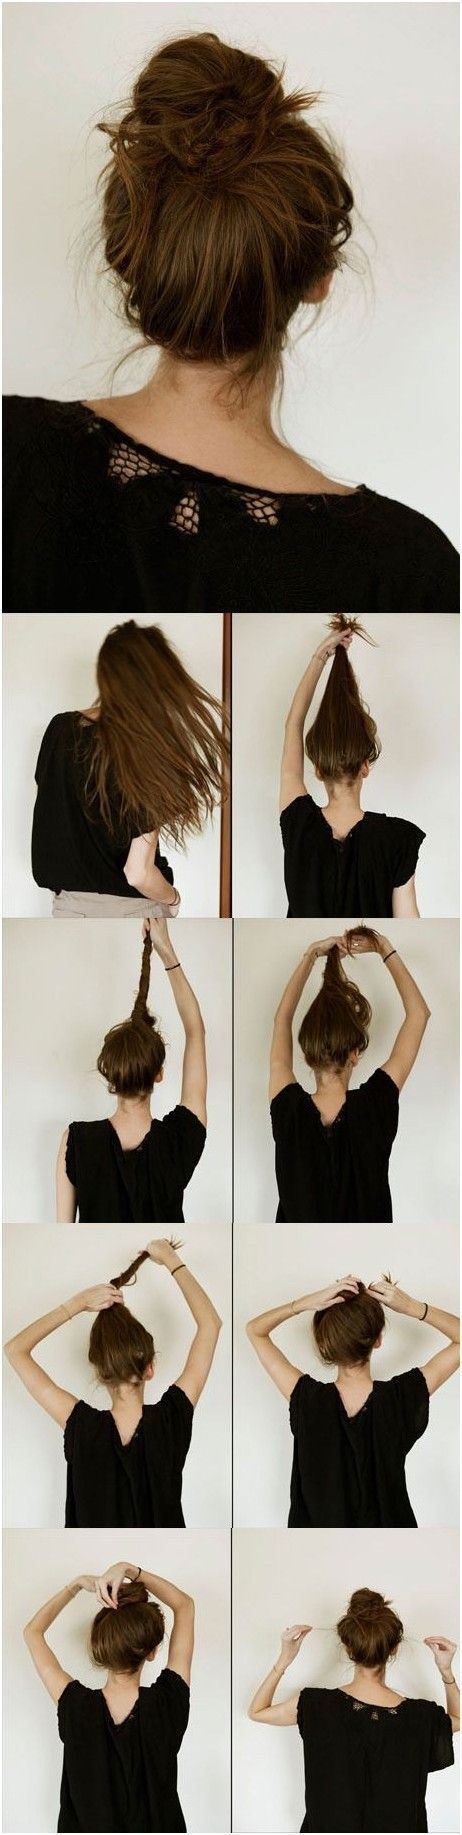 10 Top Bun Tutorials zu einem Winter Look Glam